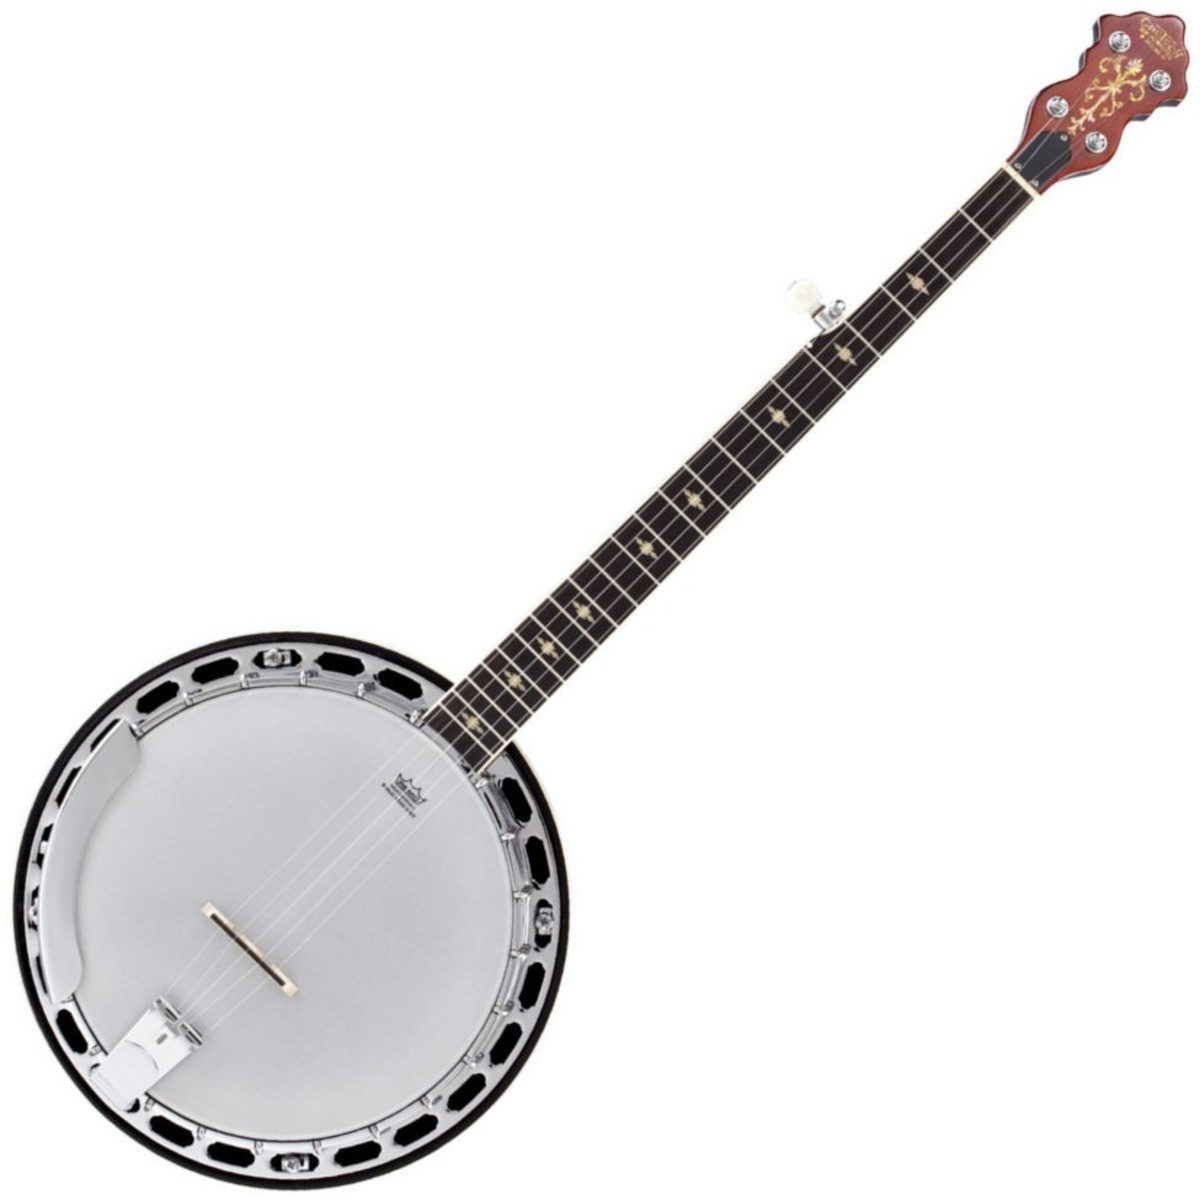 Five-string Resonator Banjo